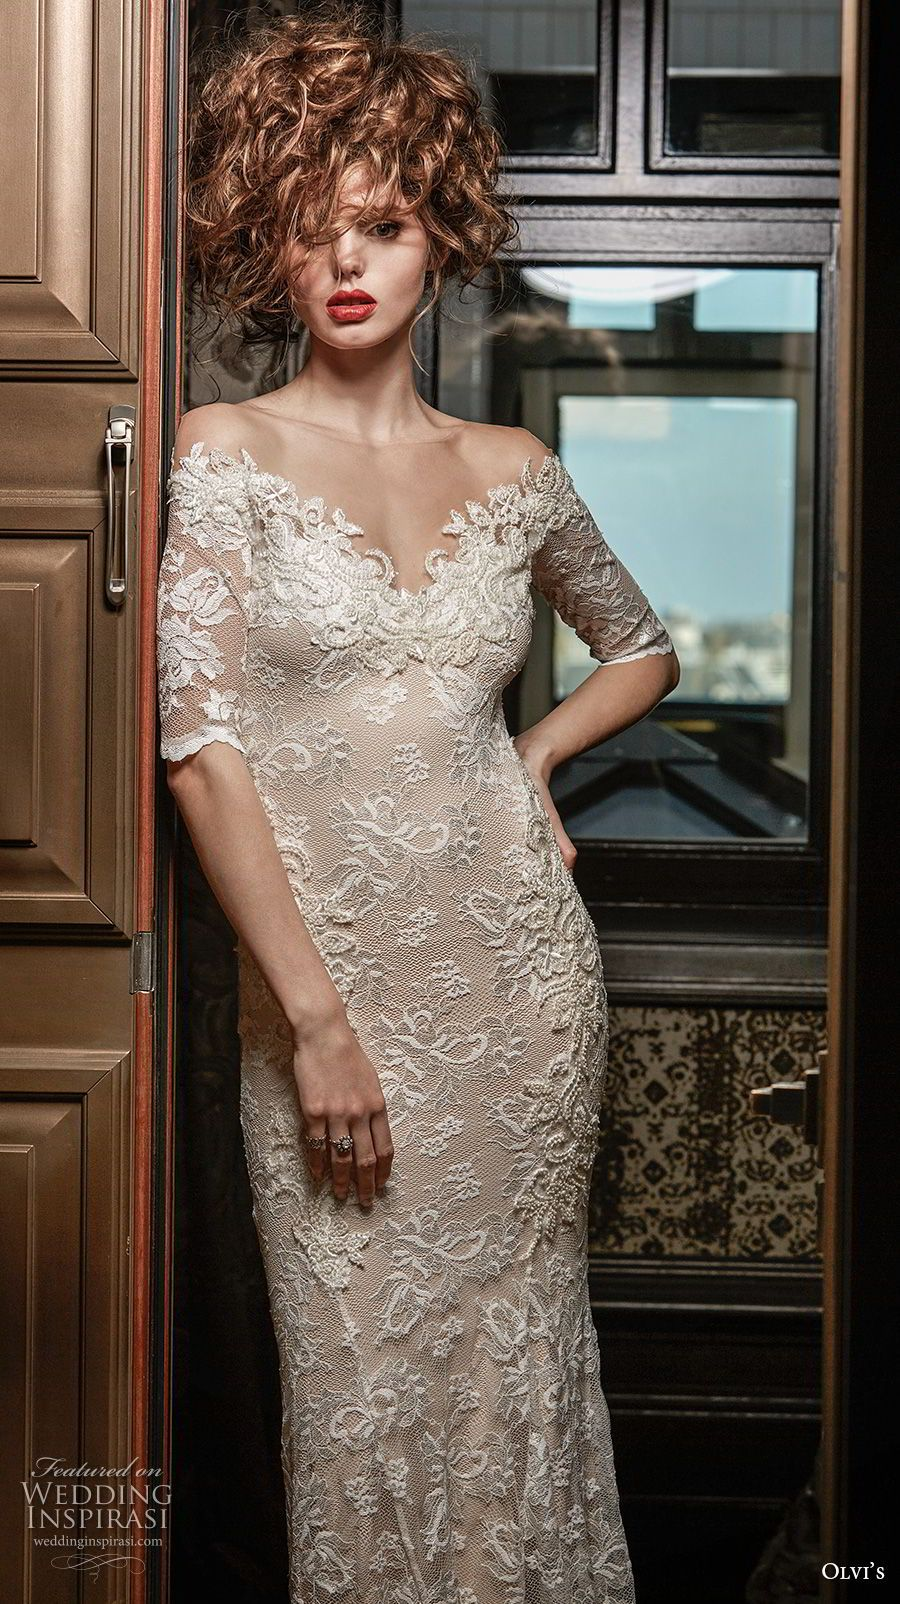 Olvius wedding dresses u ucroyal romanceud bridal collections